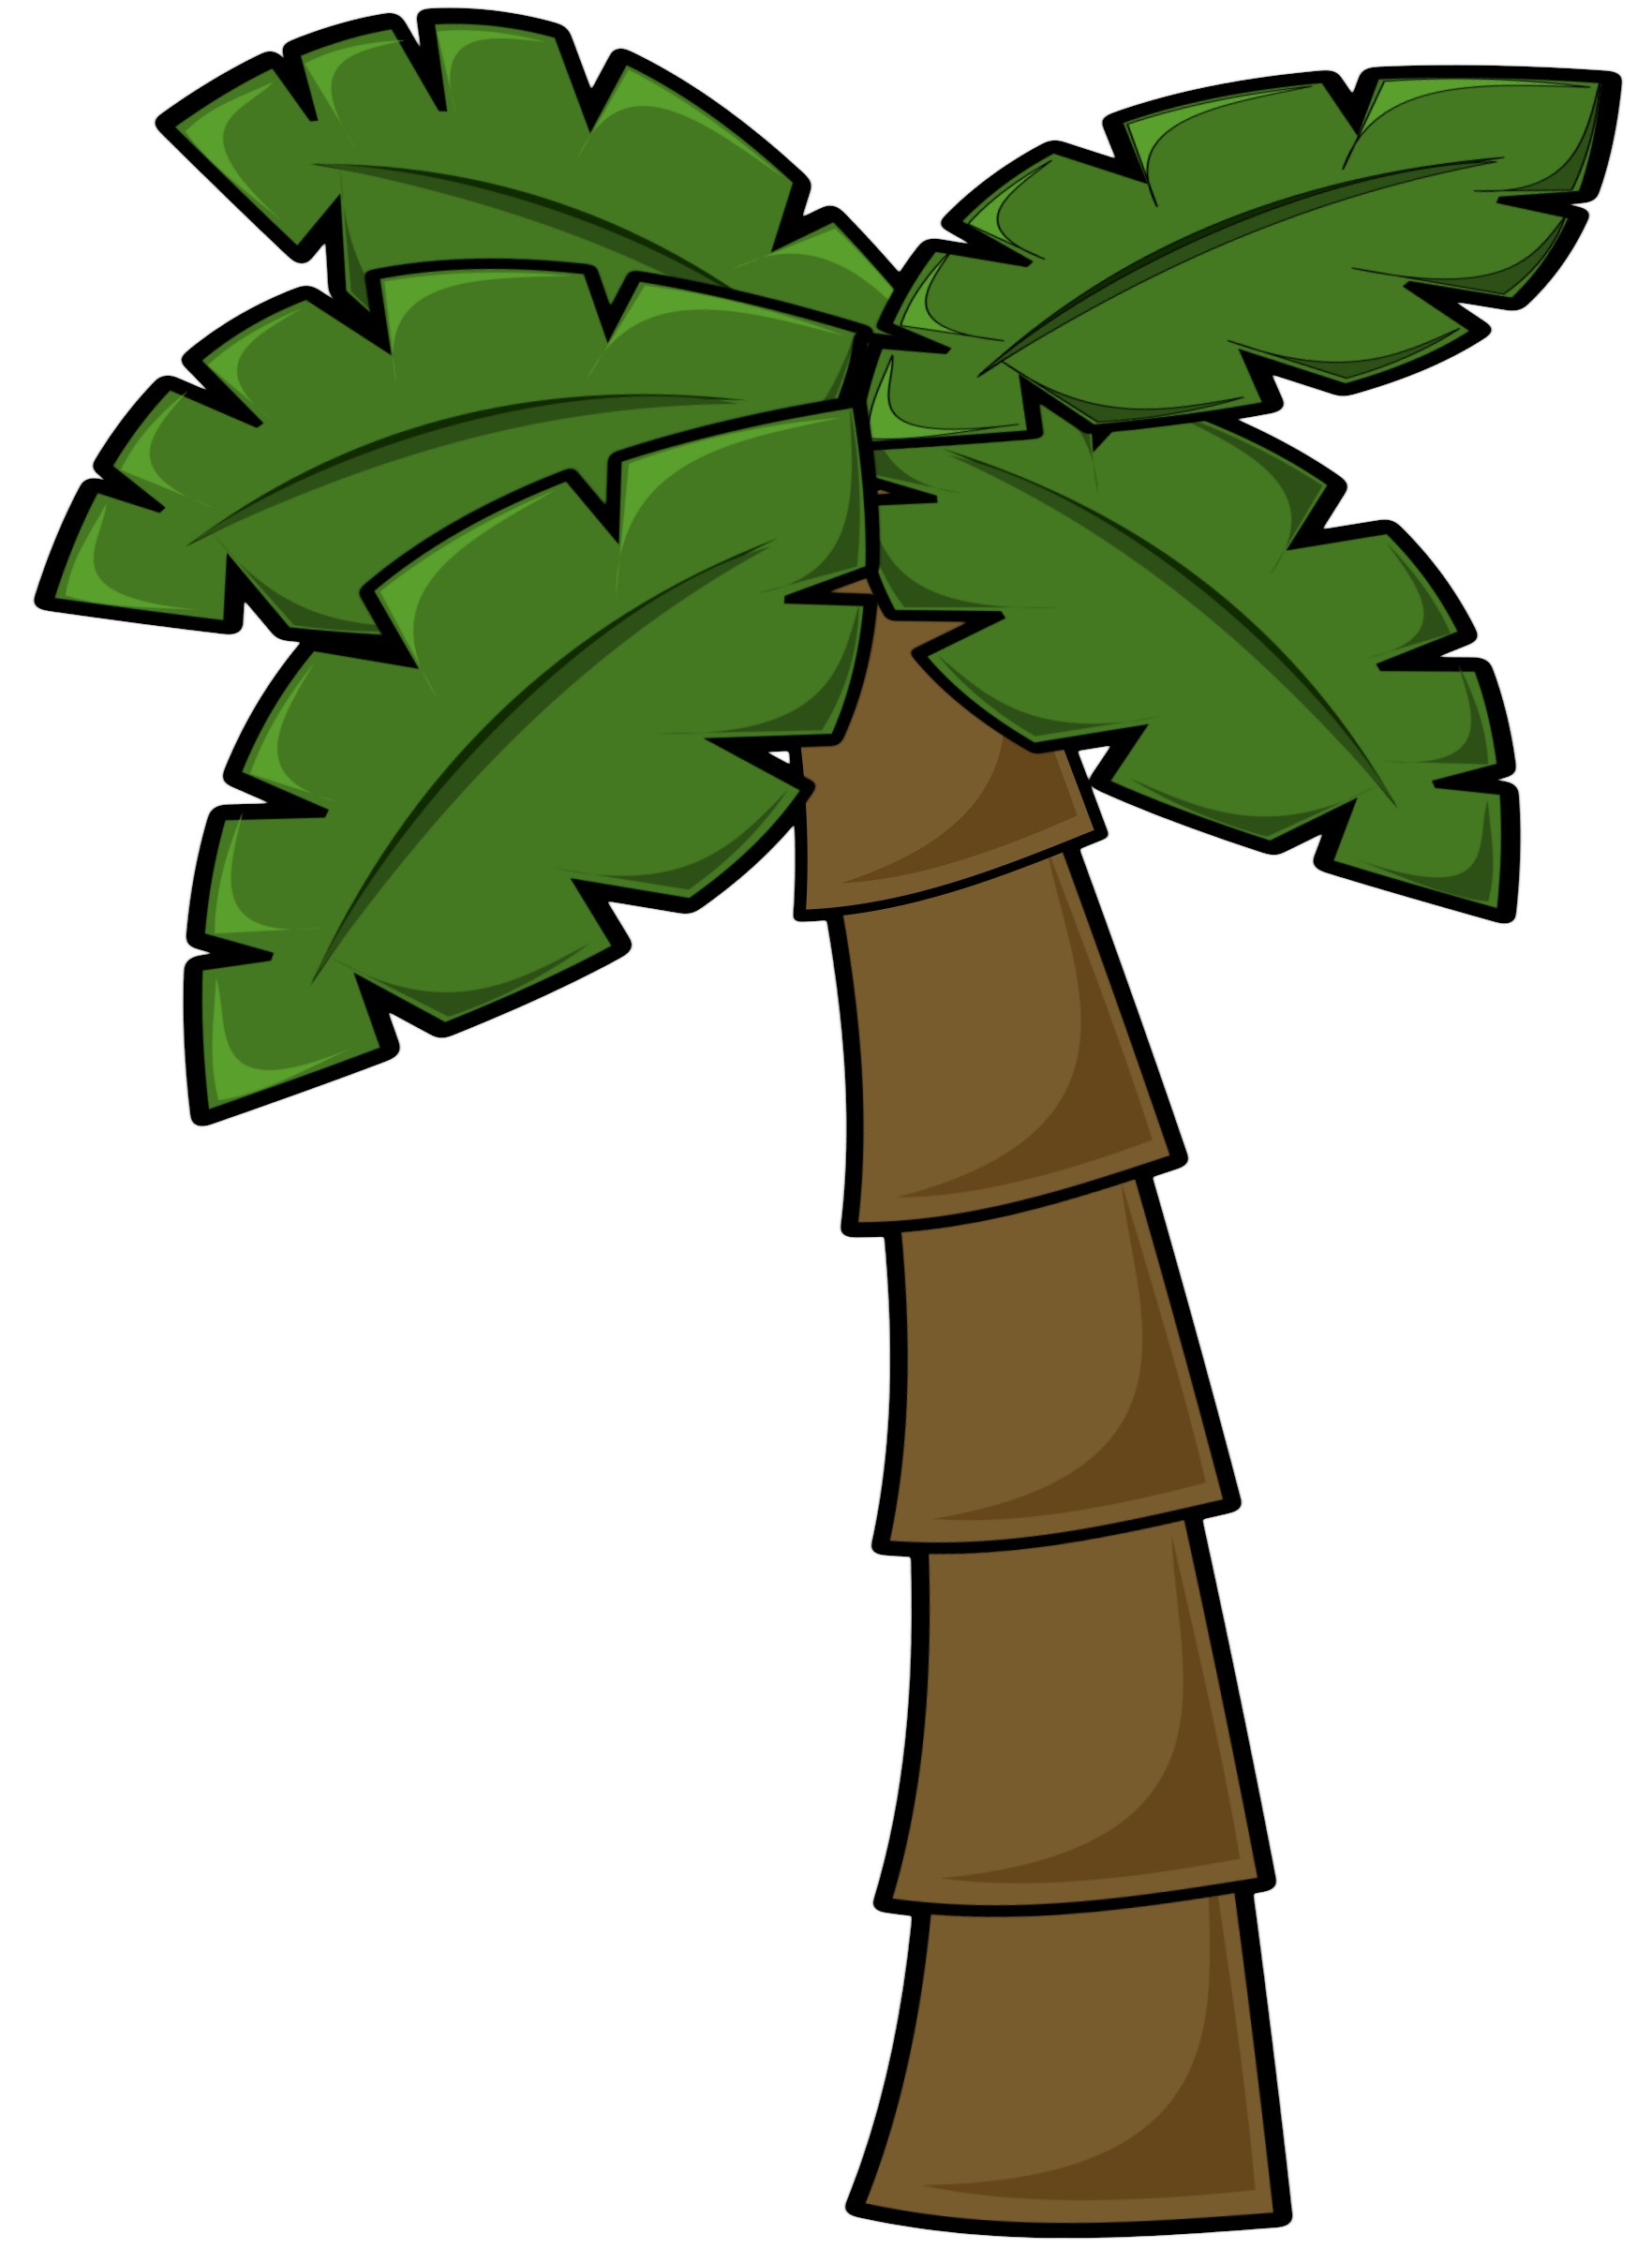 Brighter palm tree by Wuzzy